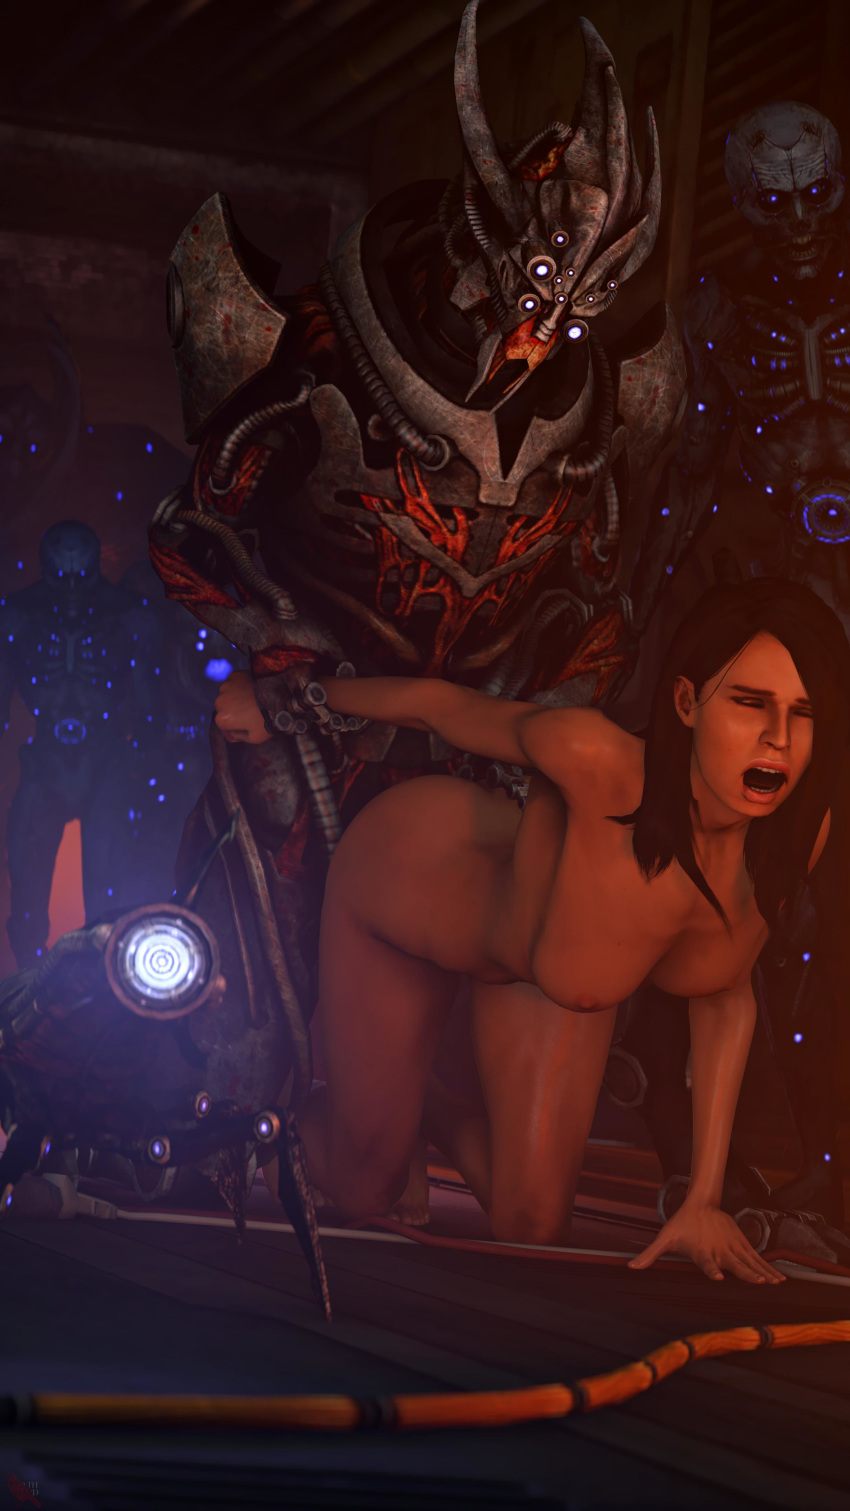 mass effect 2 Nothing is more badass than treating a woman with respect